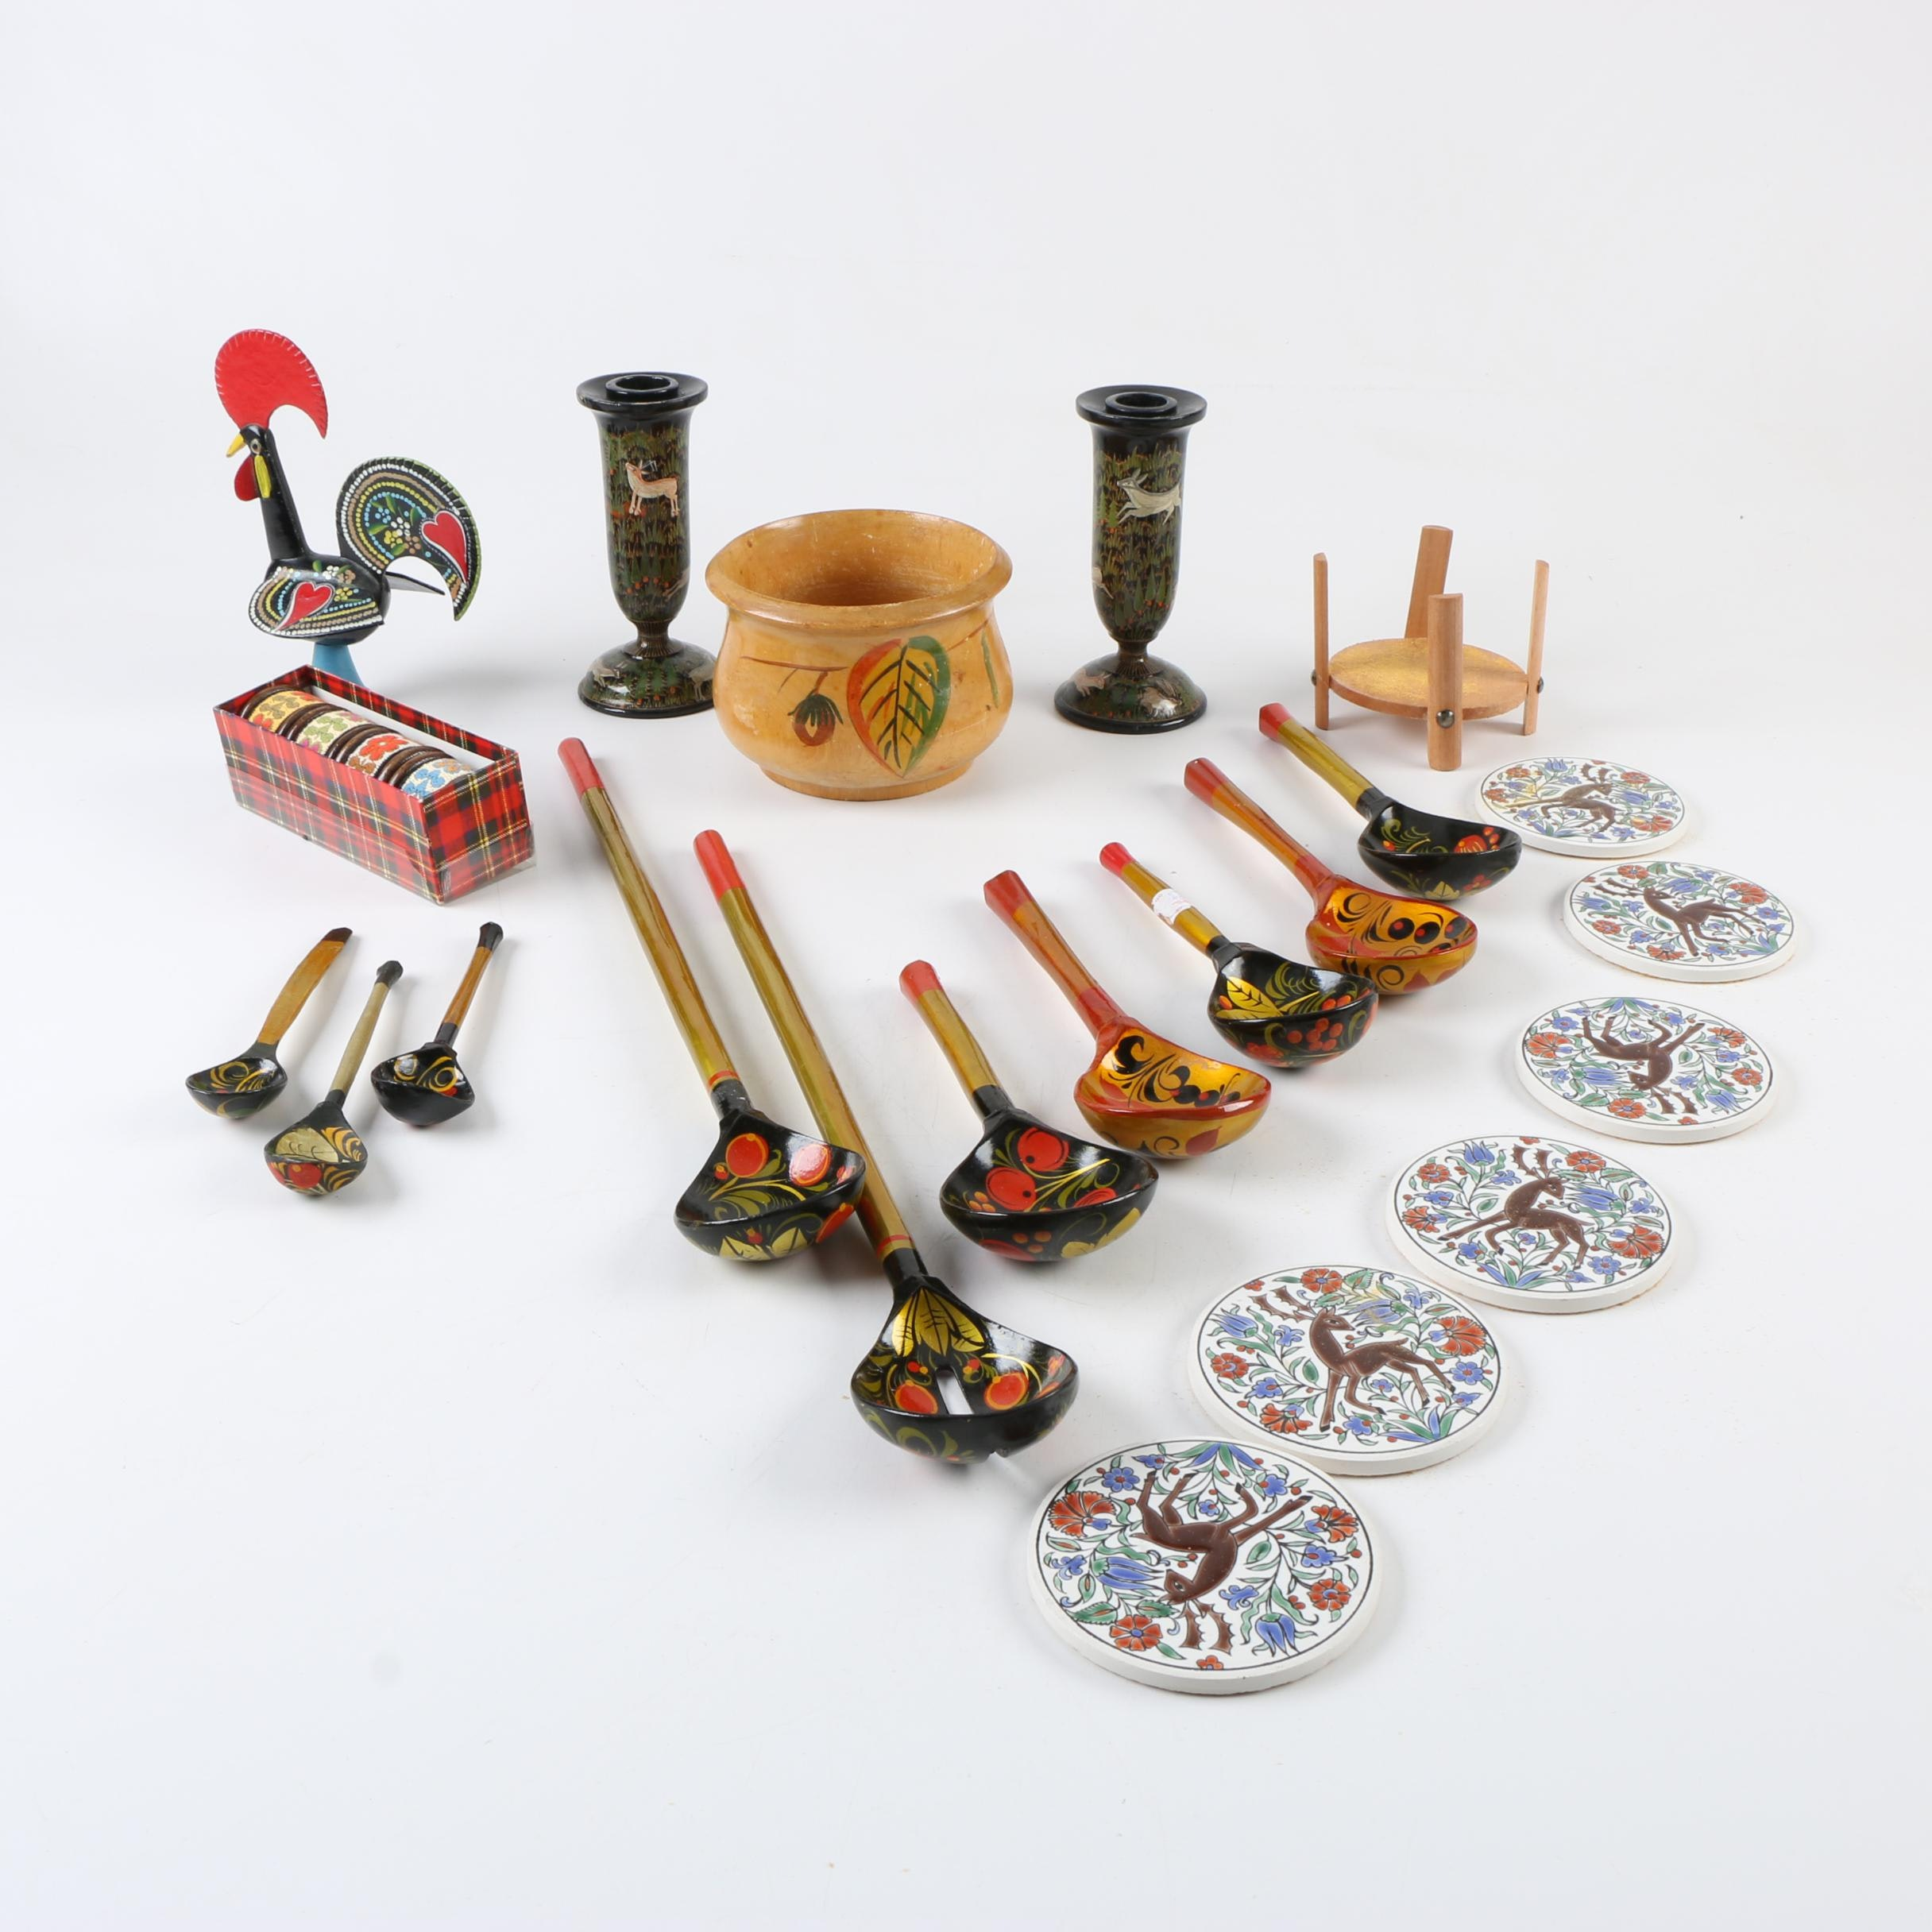 Decorative Souvenirs Including Candle Holders, Spoons and Coasters